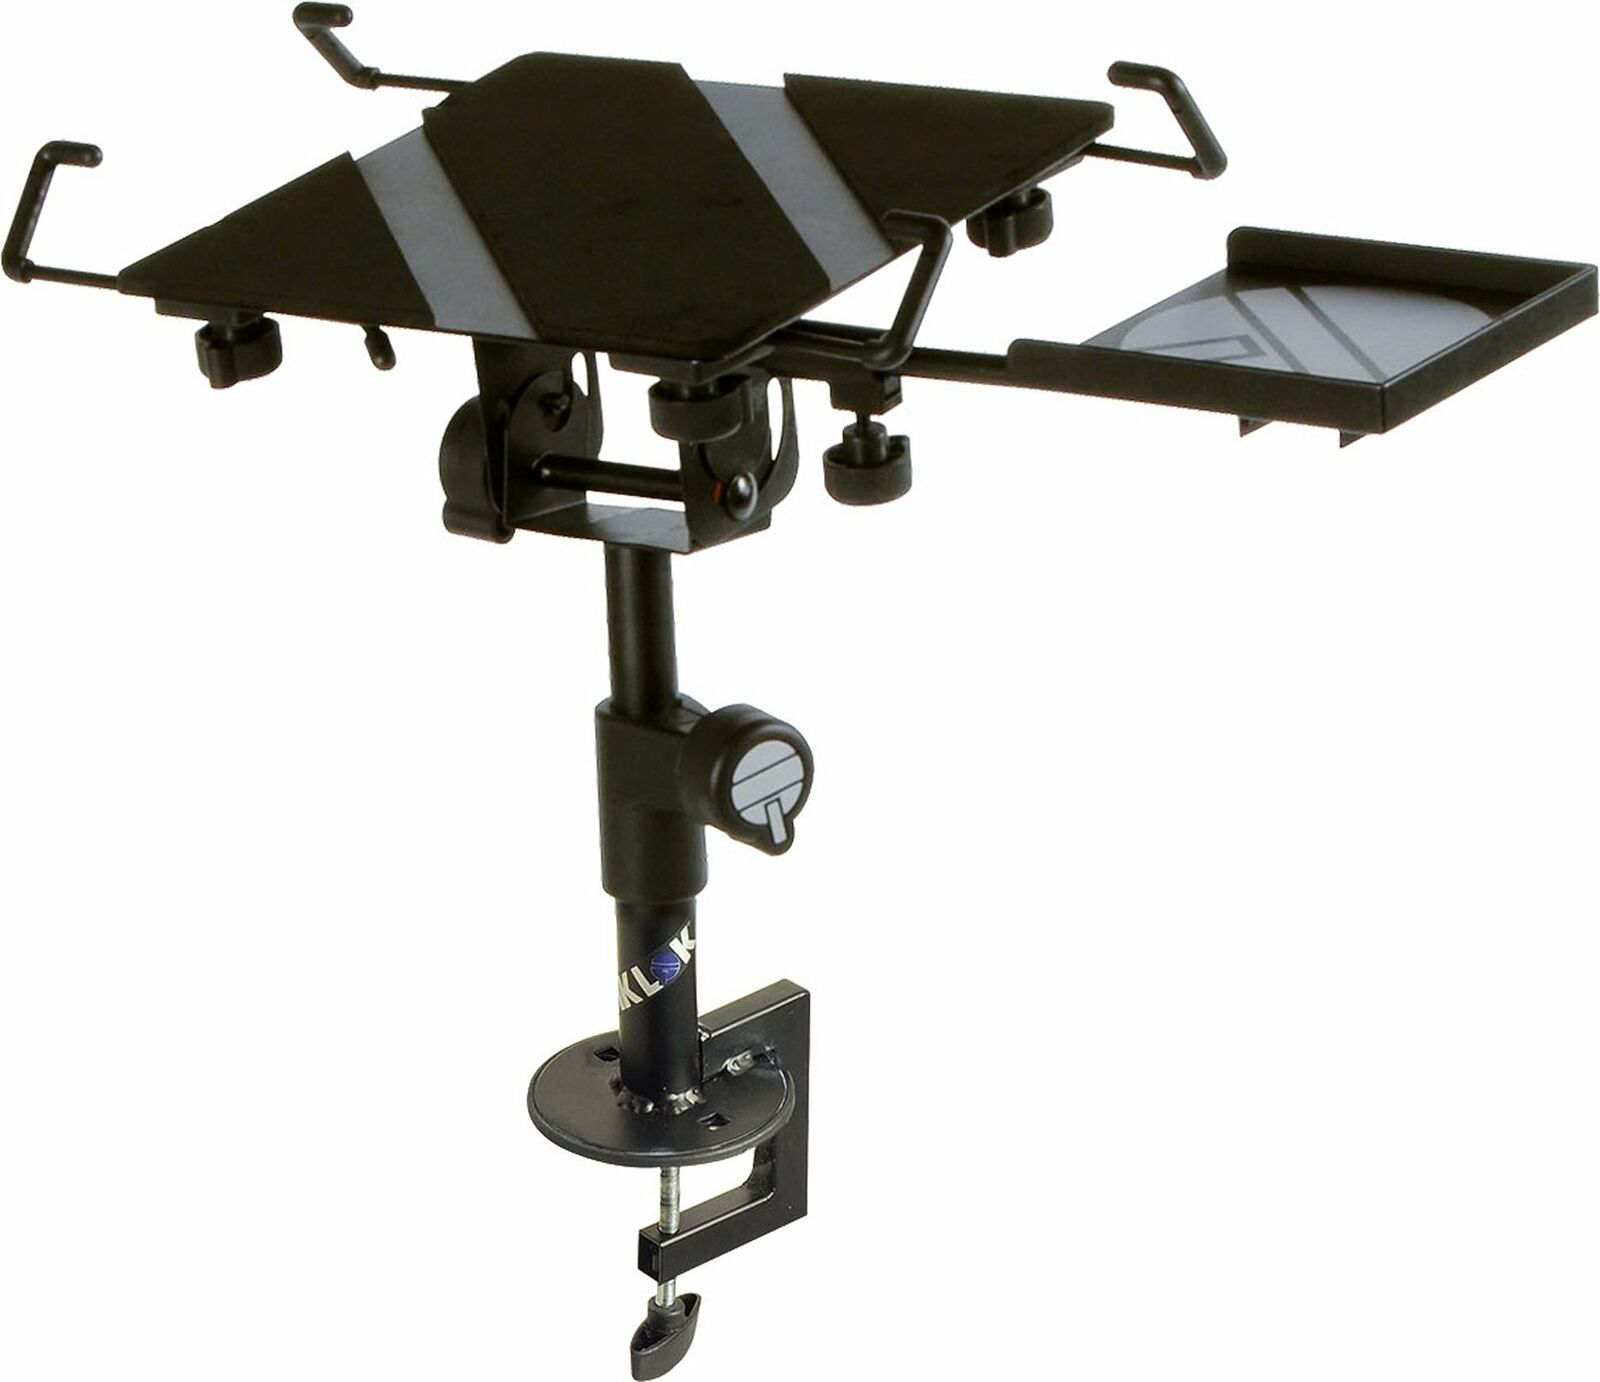 Quik Lok Tabletop Laptop Mount with Adjustable Height - LPH-T